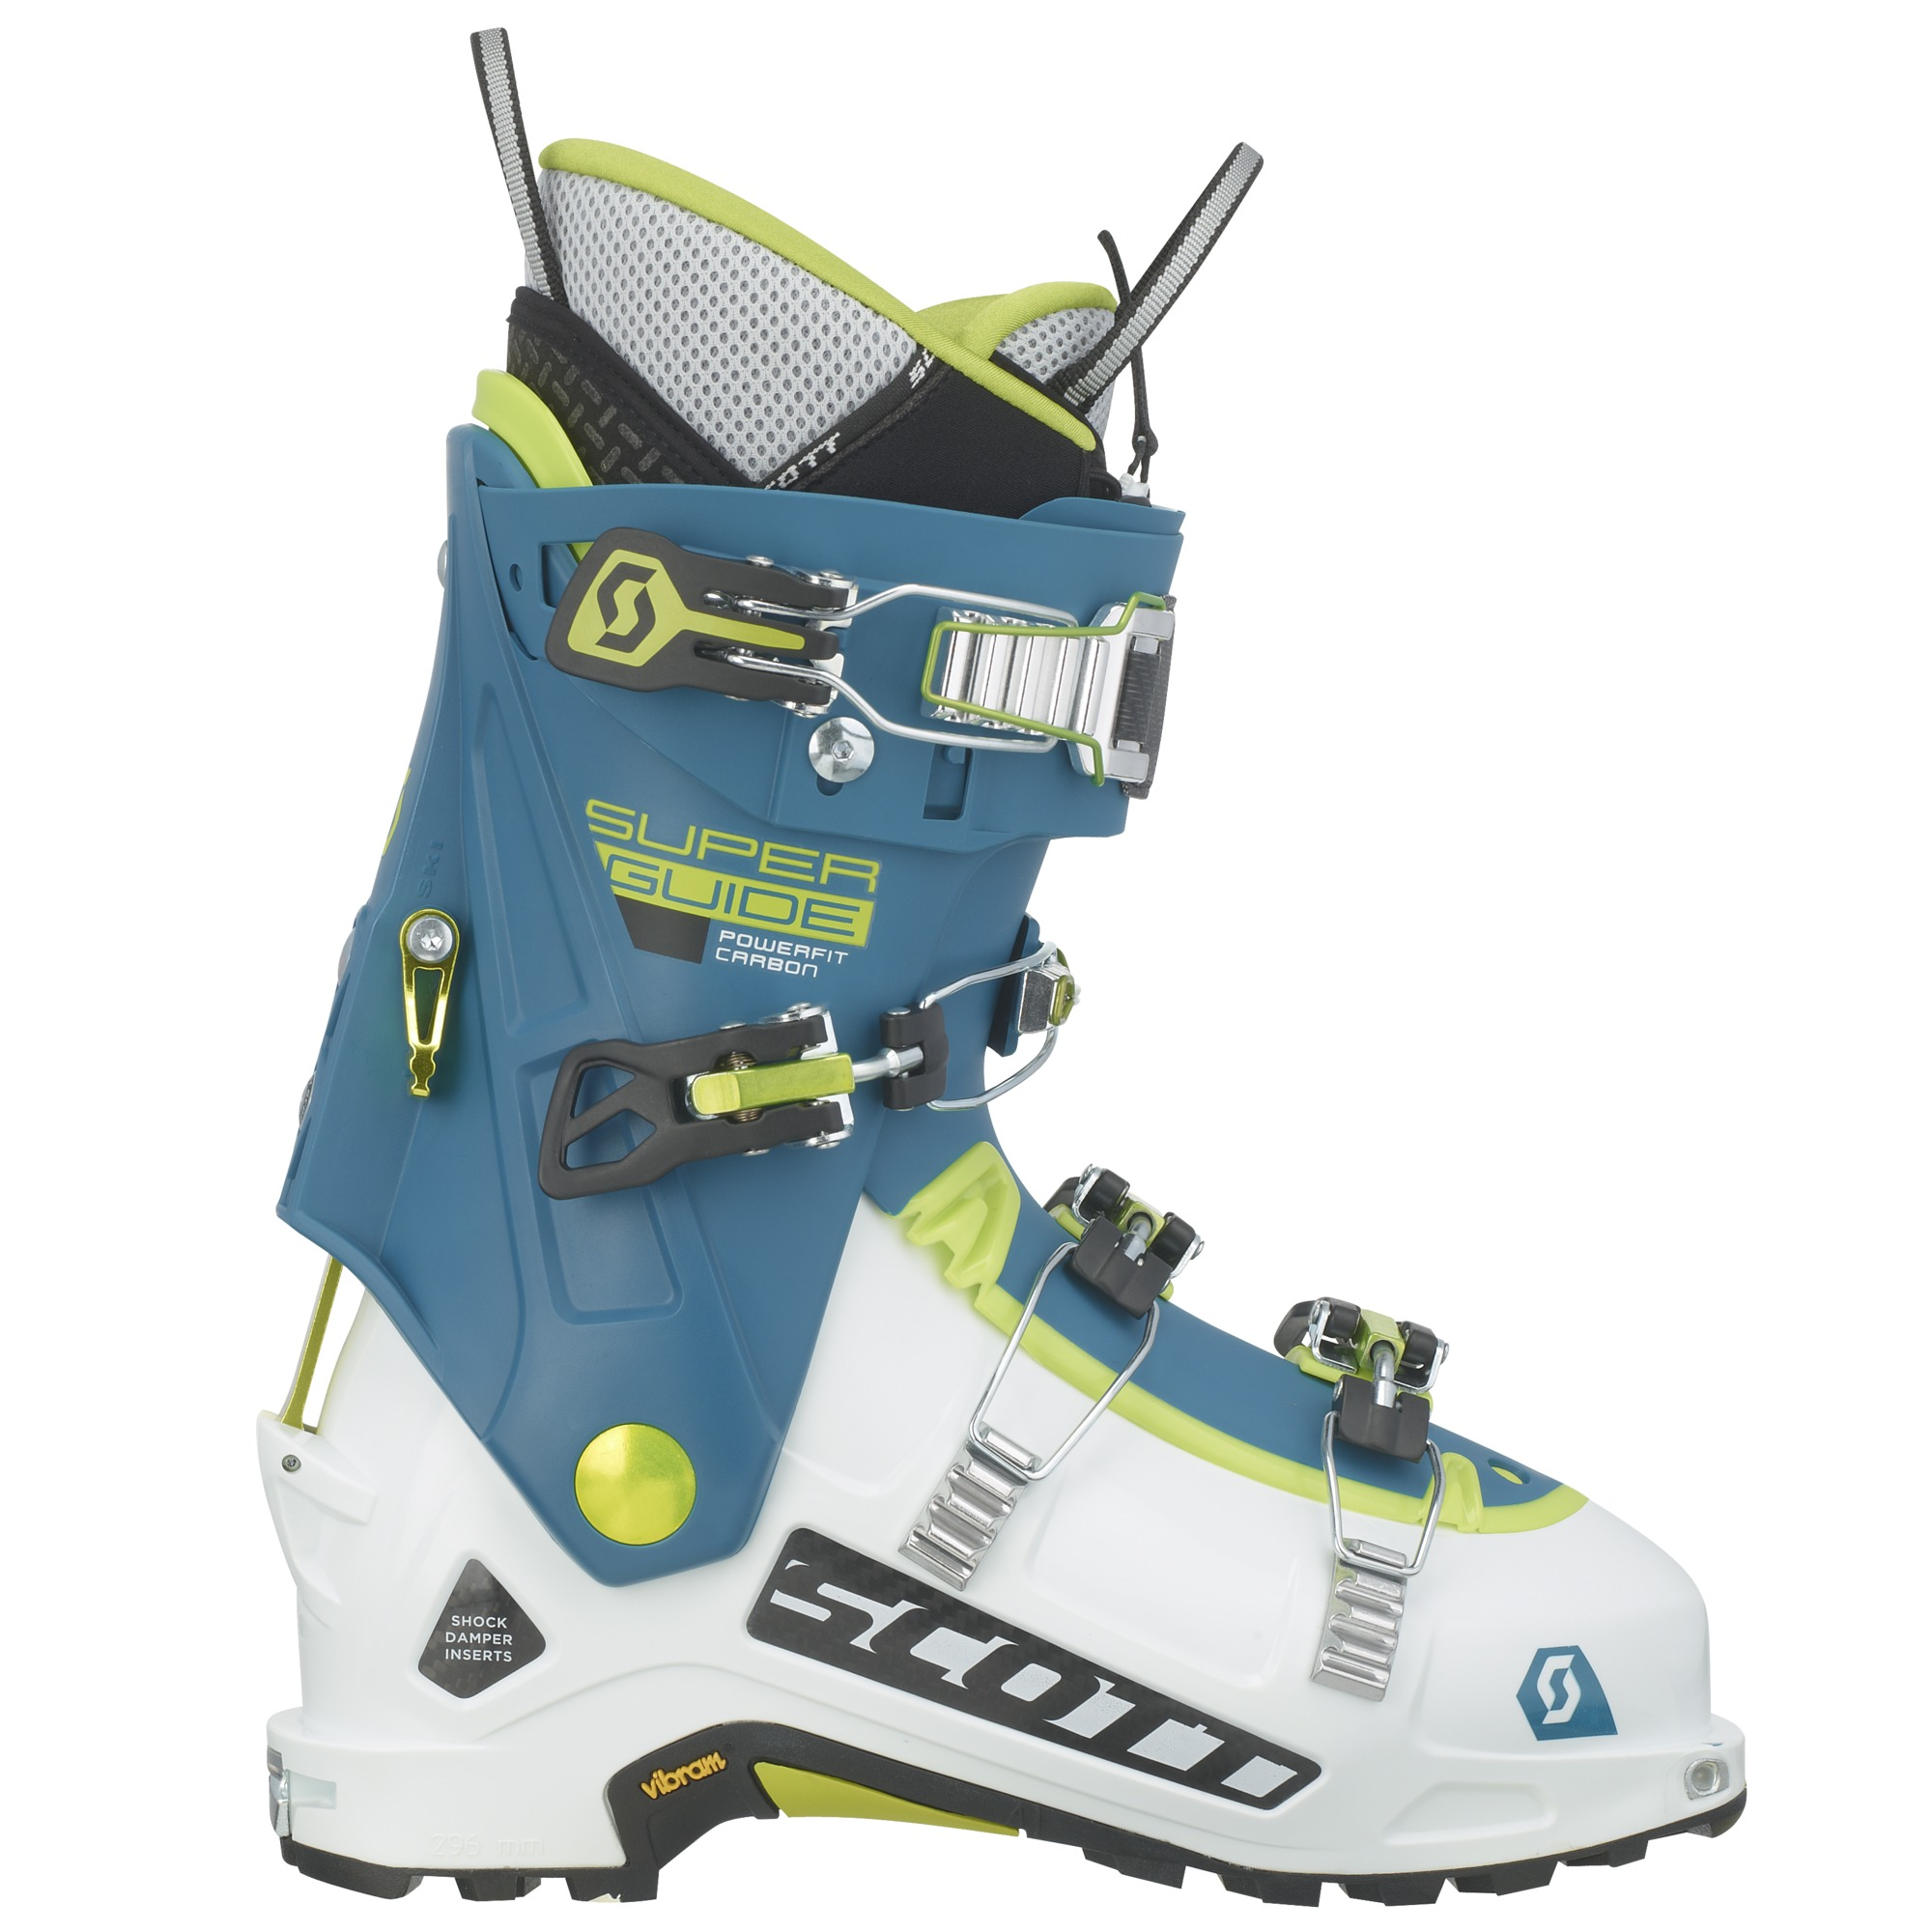 SCOTT Superguide Carbon Ski Boot